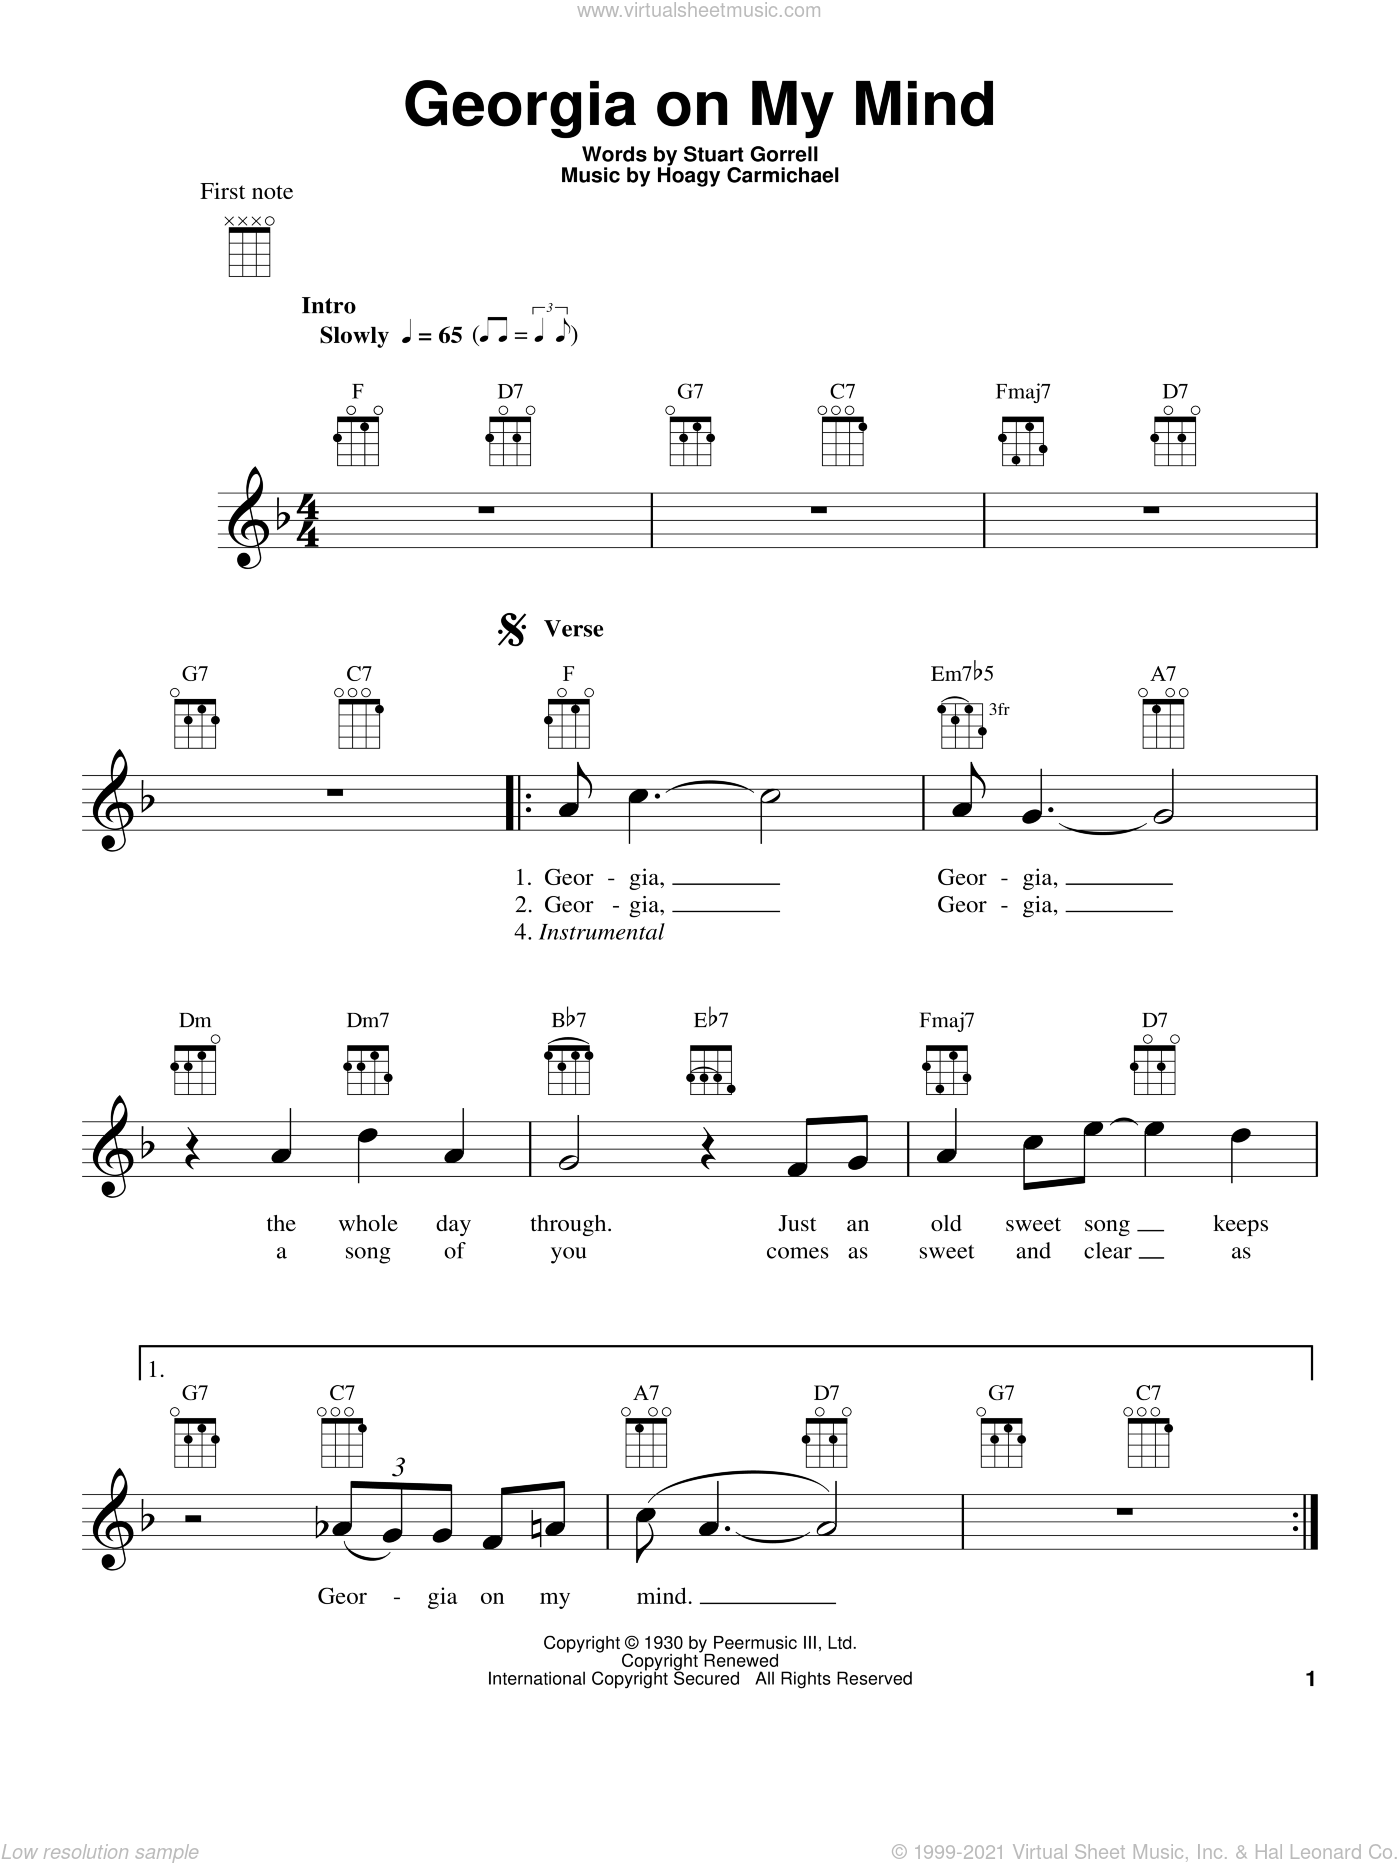 Georgia On My Mind sheet music for ukulele by Ray Charles, Hoagy Carmichael, Stuart Gorrell and Willie Nelson, intermediate skill level